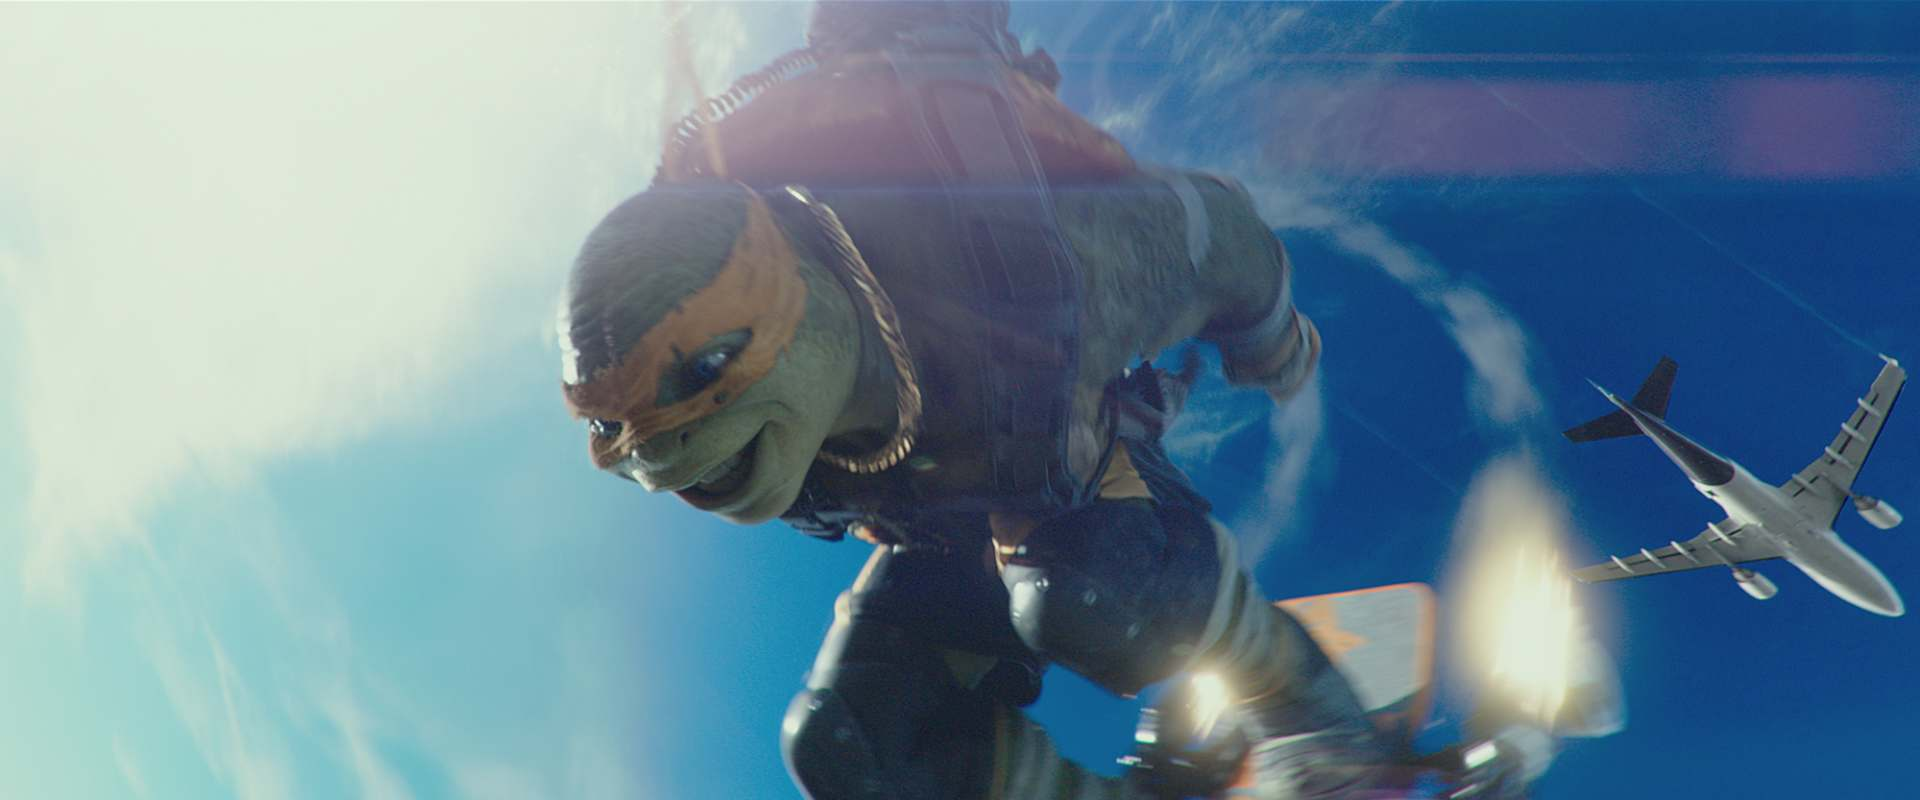 Teenage Mutant Ninja Turtles: Out of the Shadows background 1